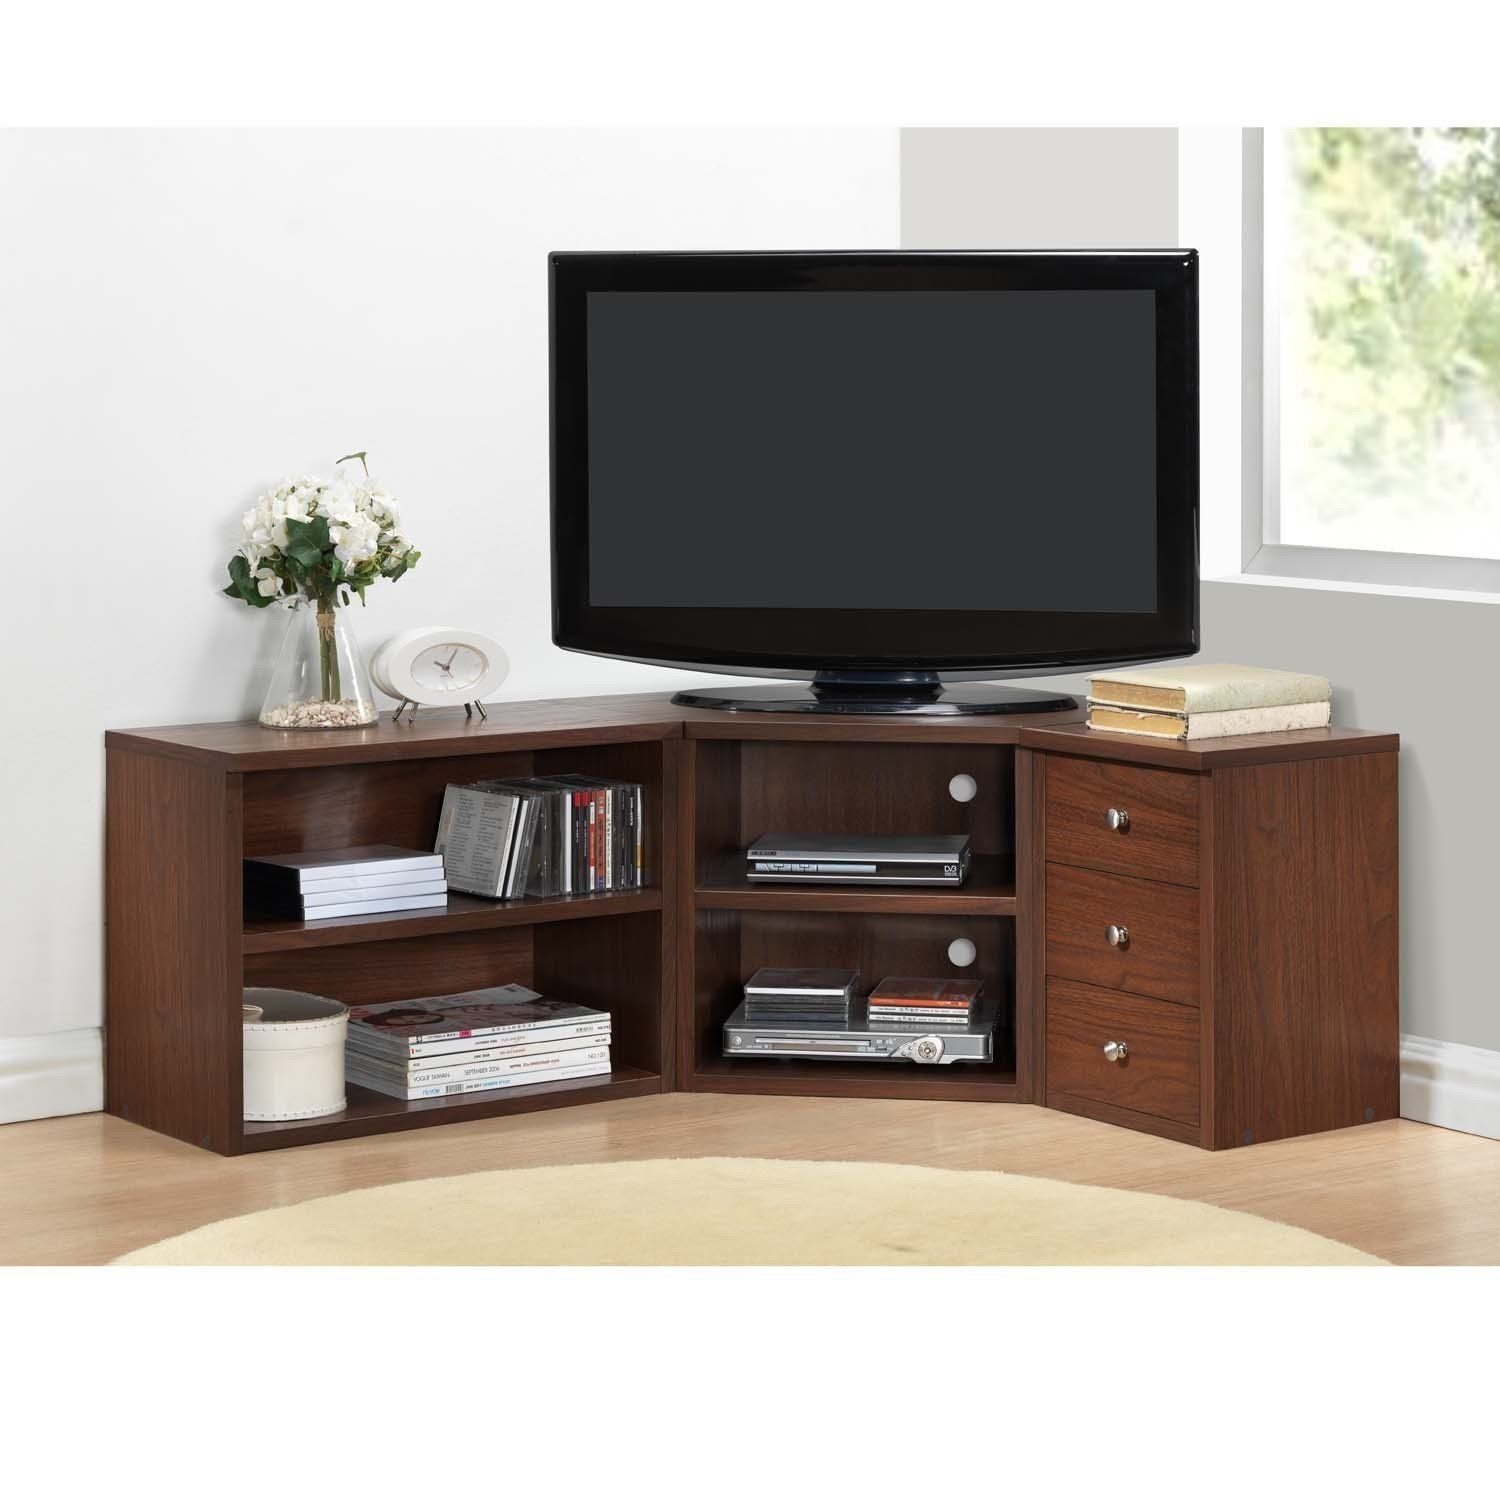 Corner Tv Stands For Flat Screens Oak Finish With Storage Contemporary Tv Stands Corner Tv Stands Tv Stand Wood Corner tv stands for flat screens